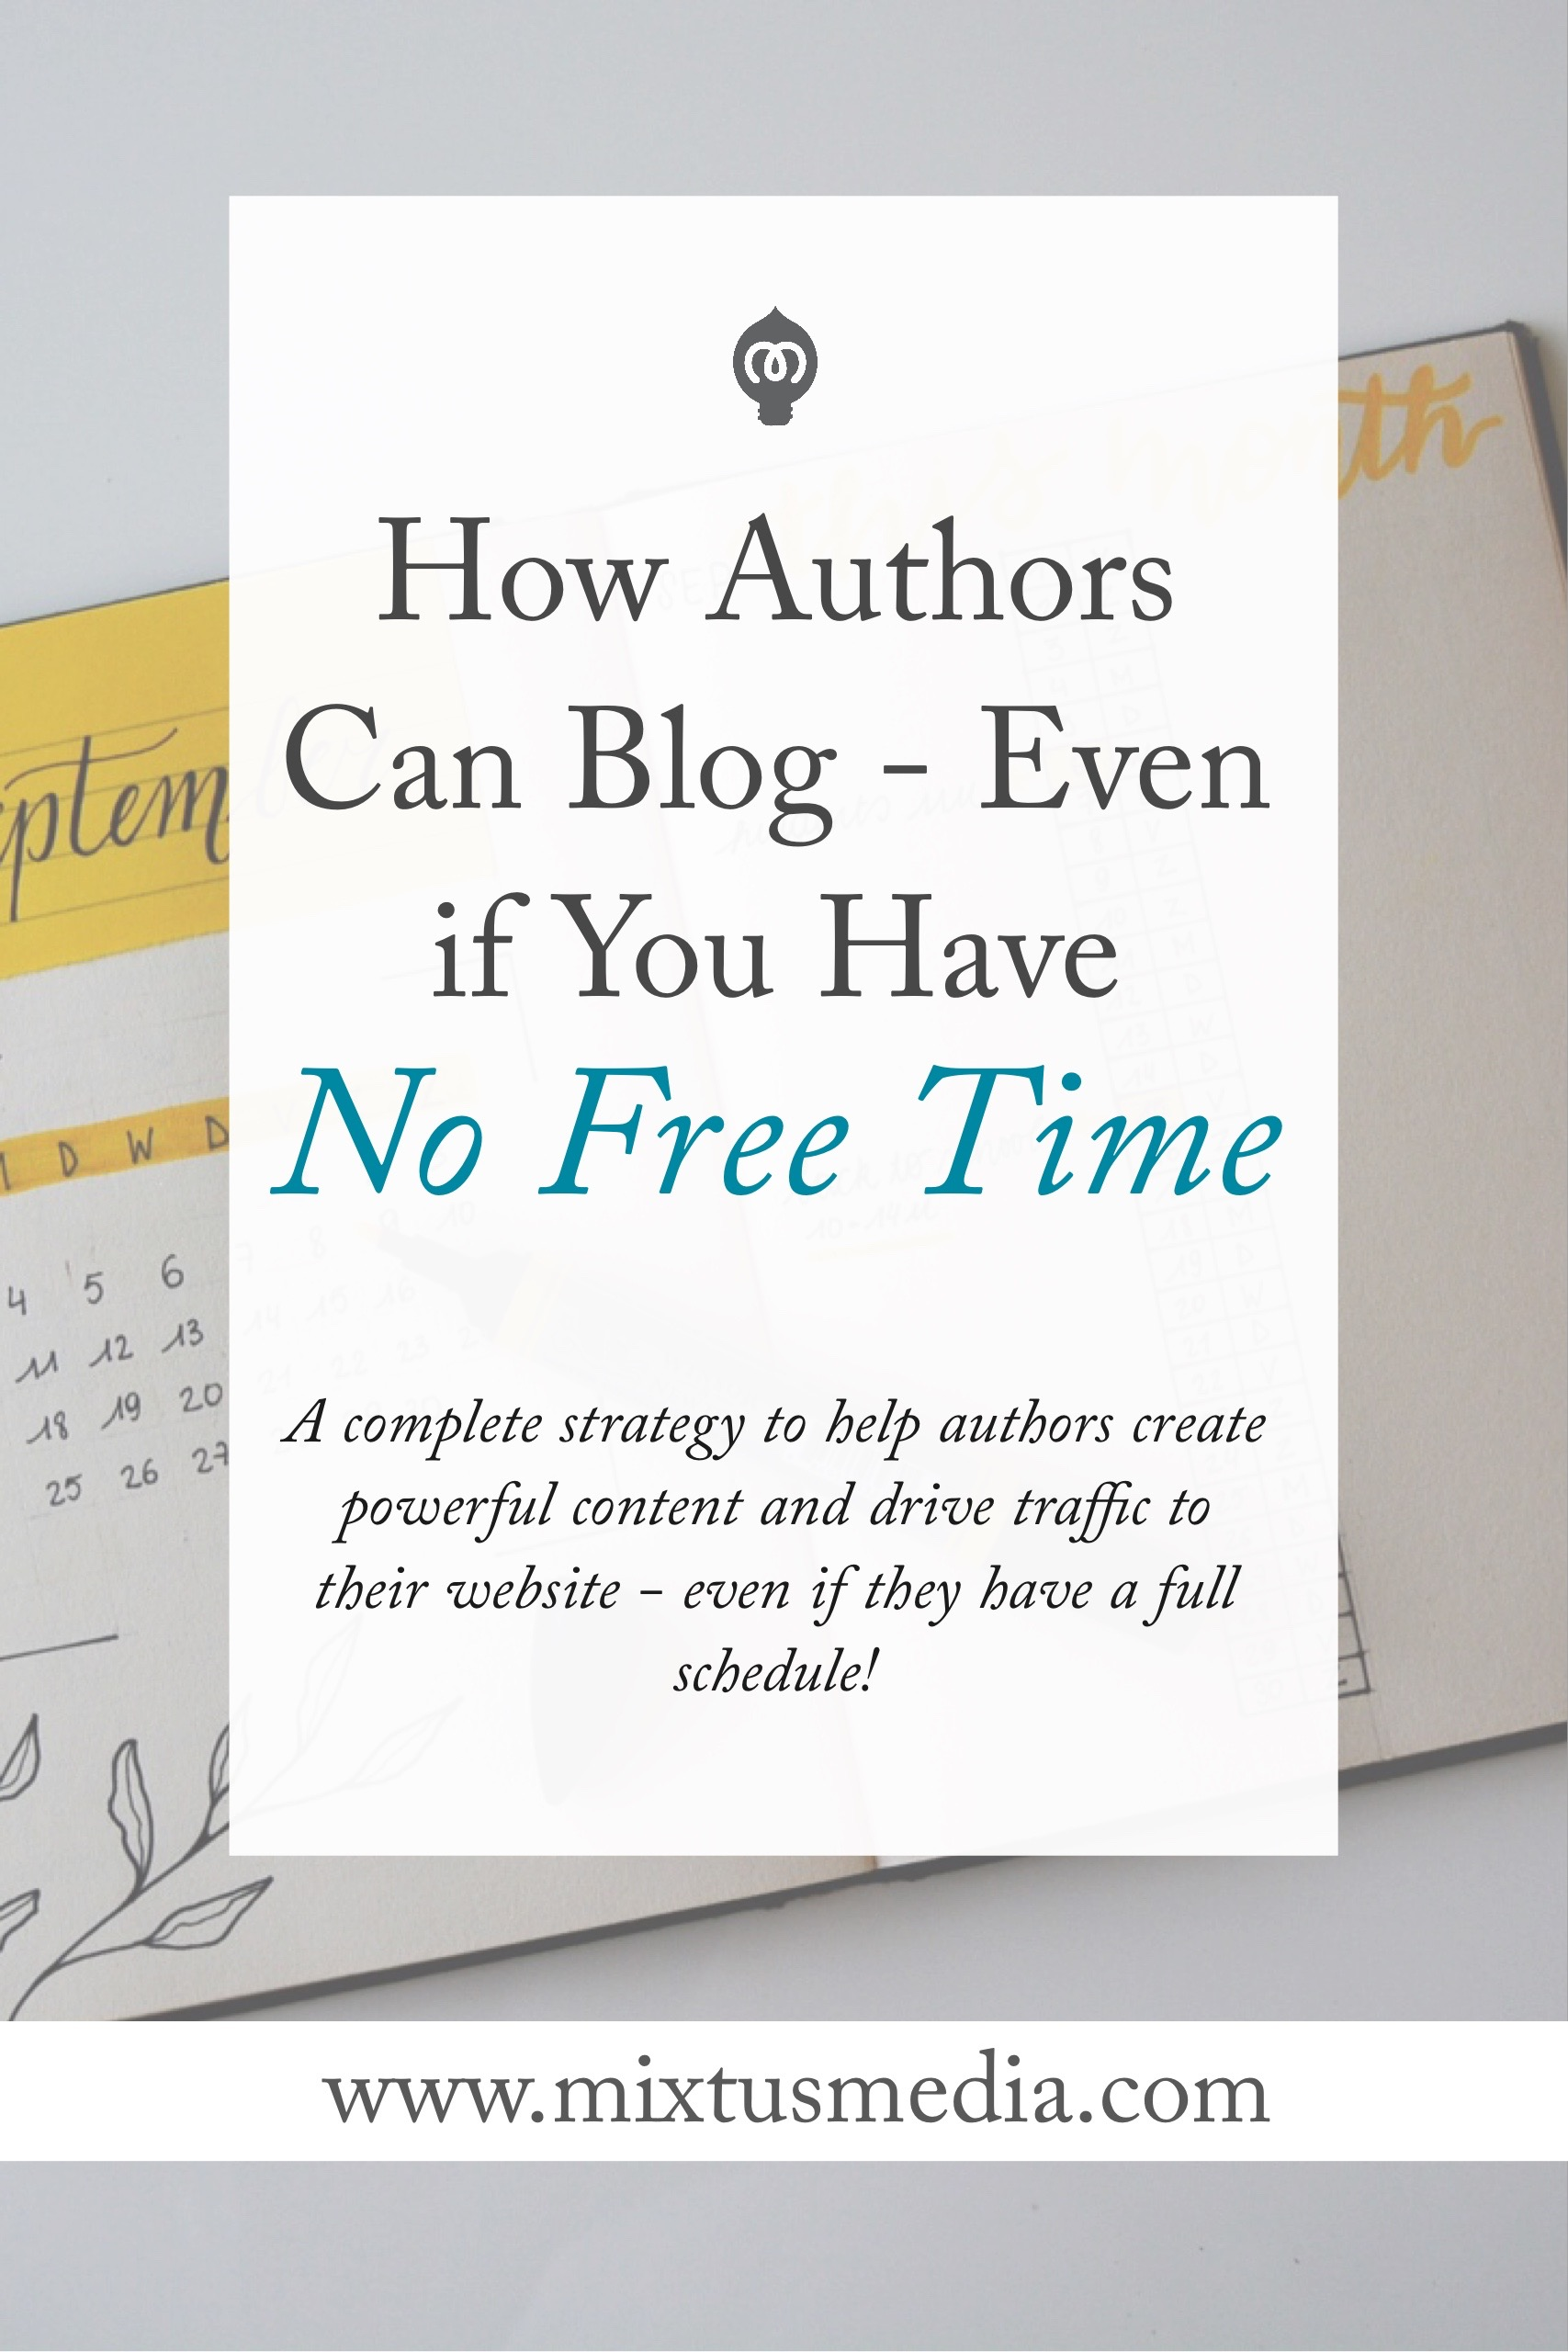 A complete strategy to help authors create powerful content and drive traffic to their website - even if you have a full schedule!